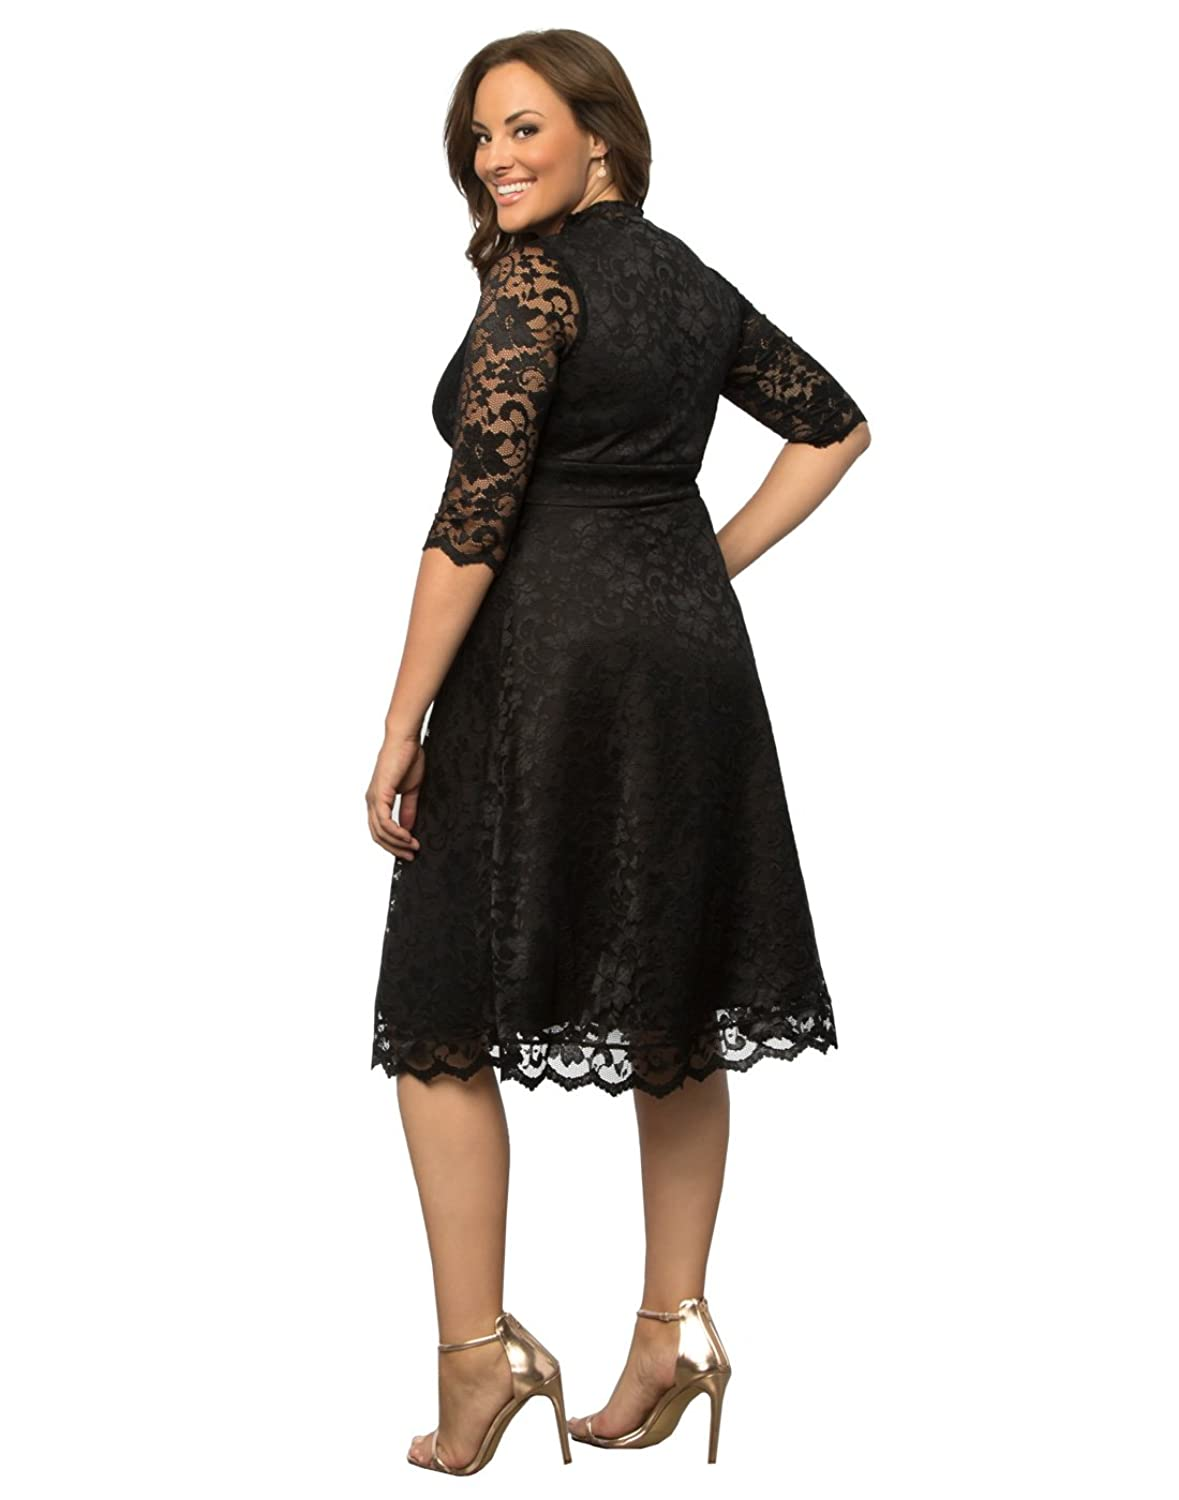 Amazon.com: Kiyonna Women\'s Plus Size Mademoiselle Lace Dress ...